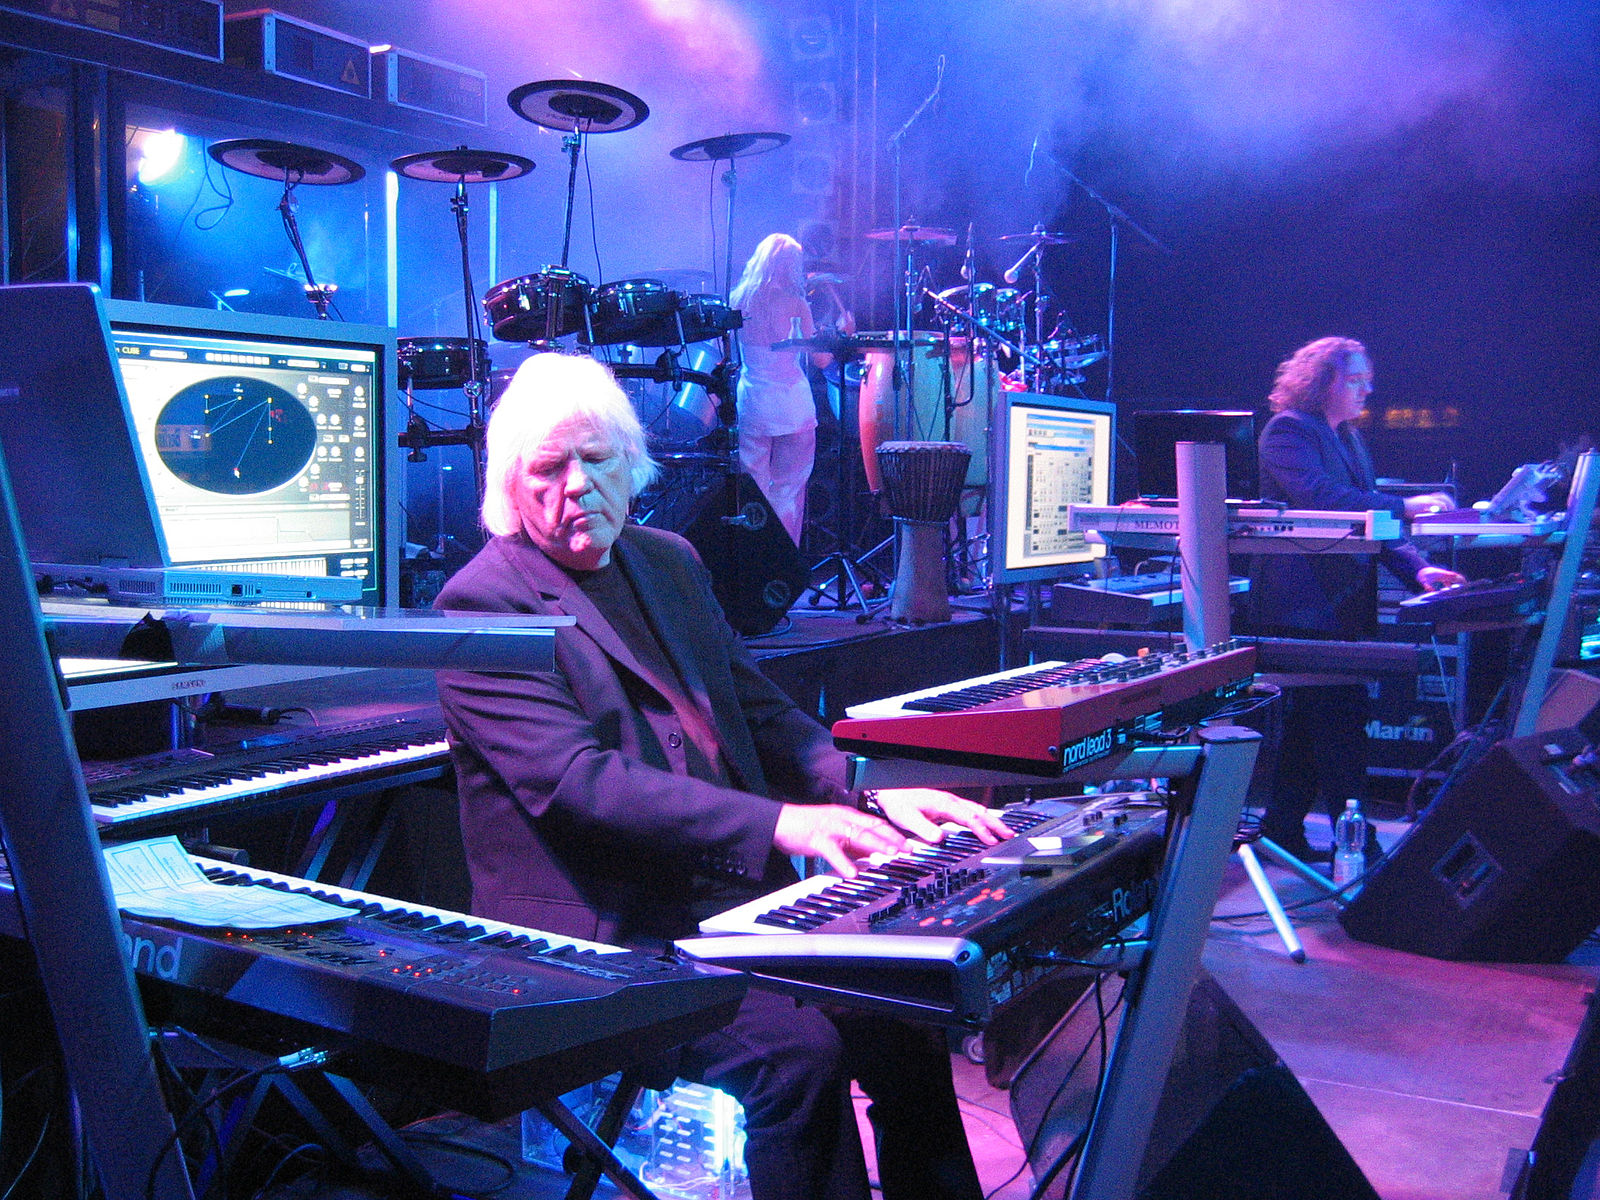 Egar Froese of Tangerine Dream